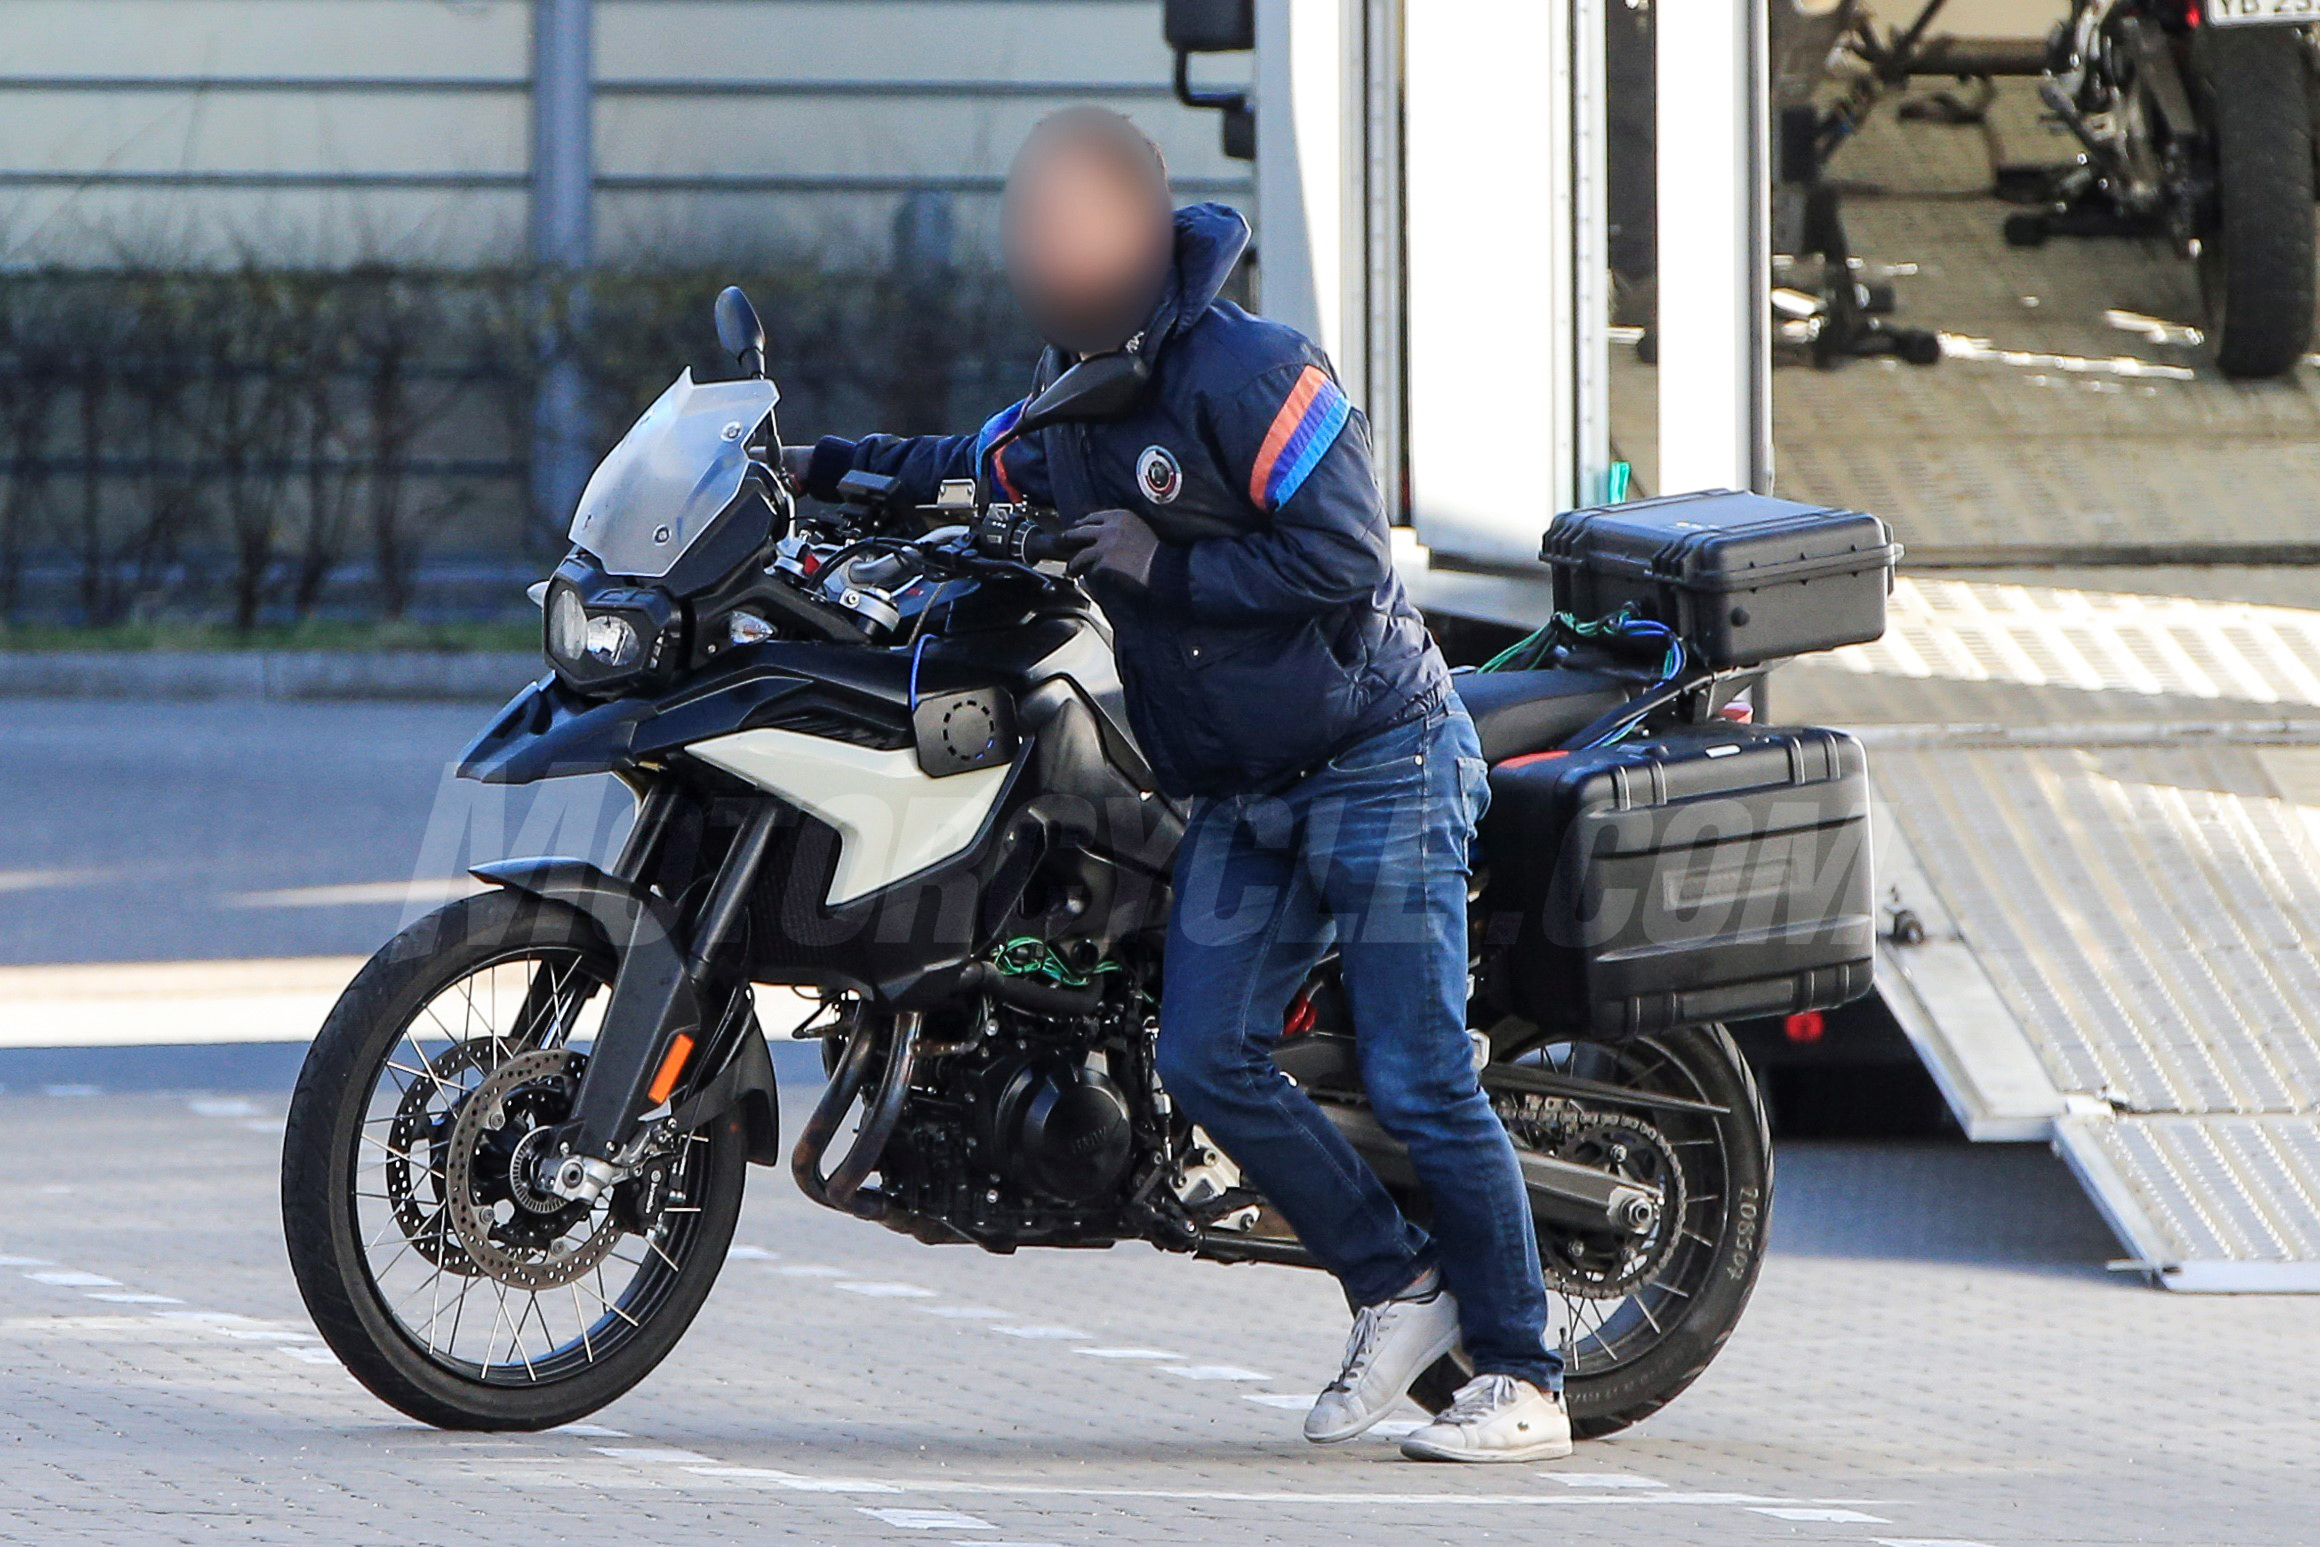 2018 Bmw F800gs Replacements Bmw F900gs And F750gs Spied